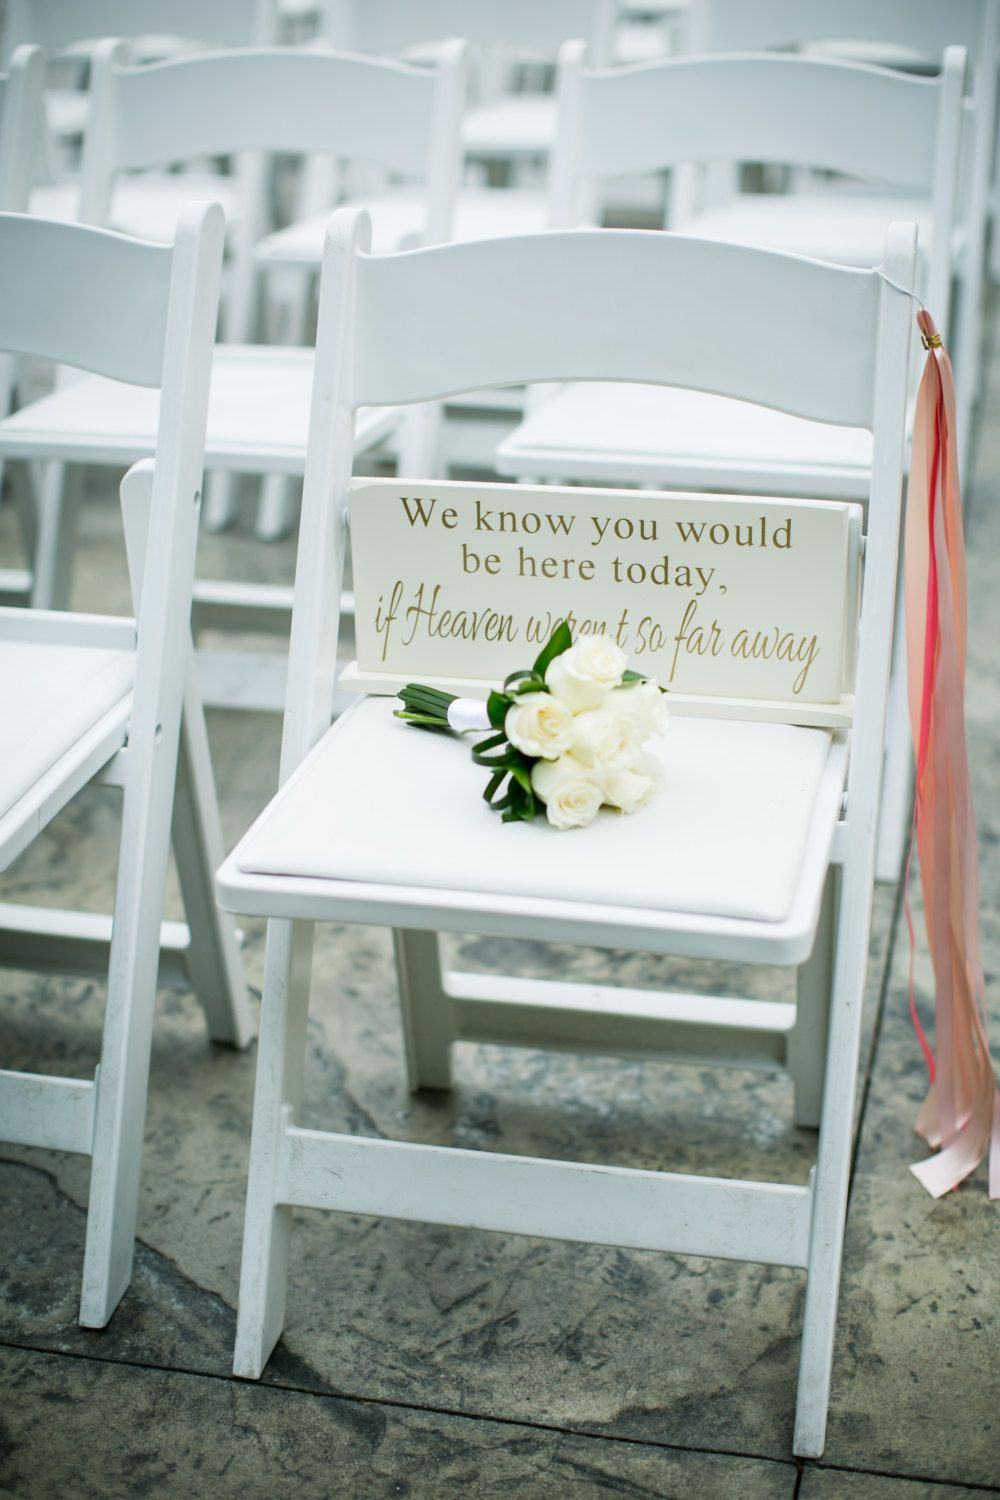 We know you would be here today if Heaven by JolieMaeCollections #wedding